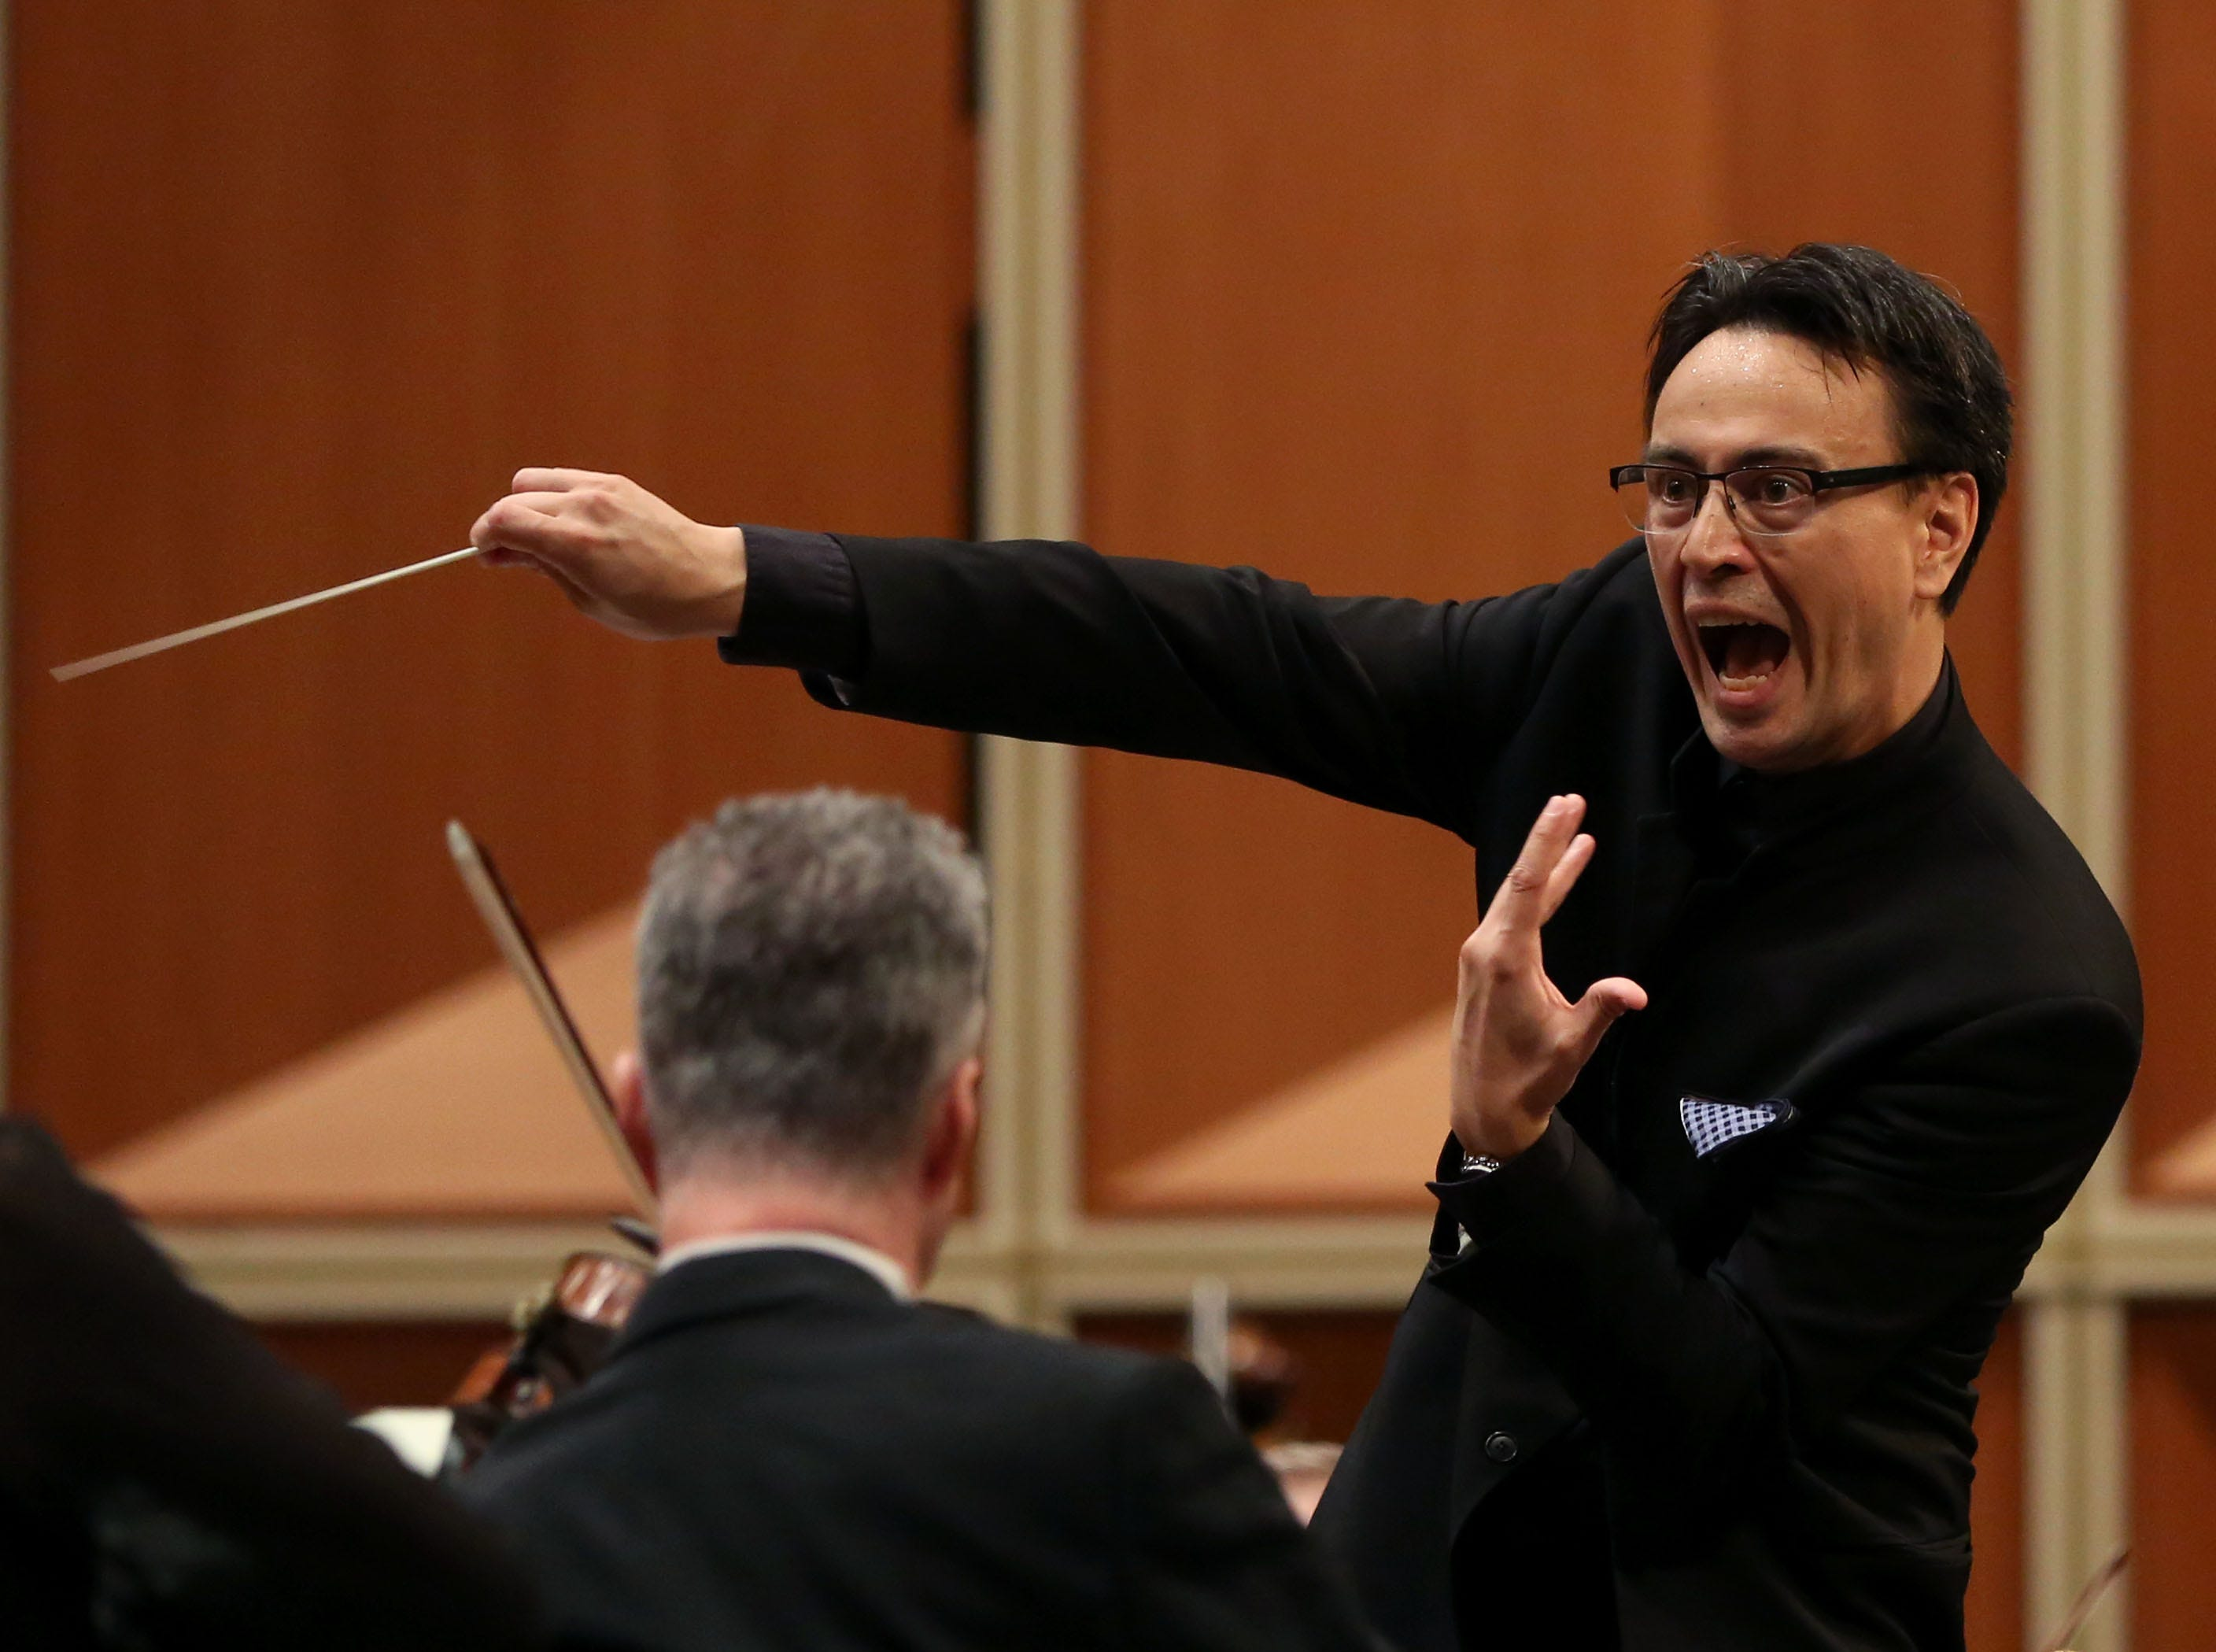 Guest conductor Ken-David Masur leads the Milwaukee Symphony's season-opening concert Saturday at the Marcus Center's Uihlein Hall.